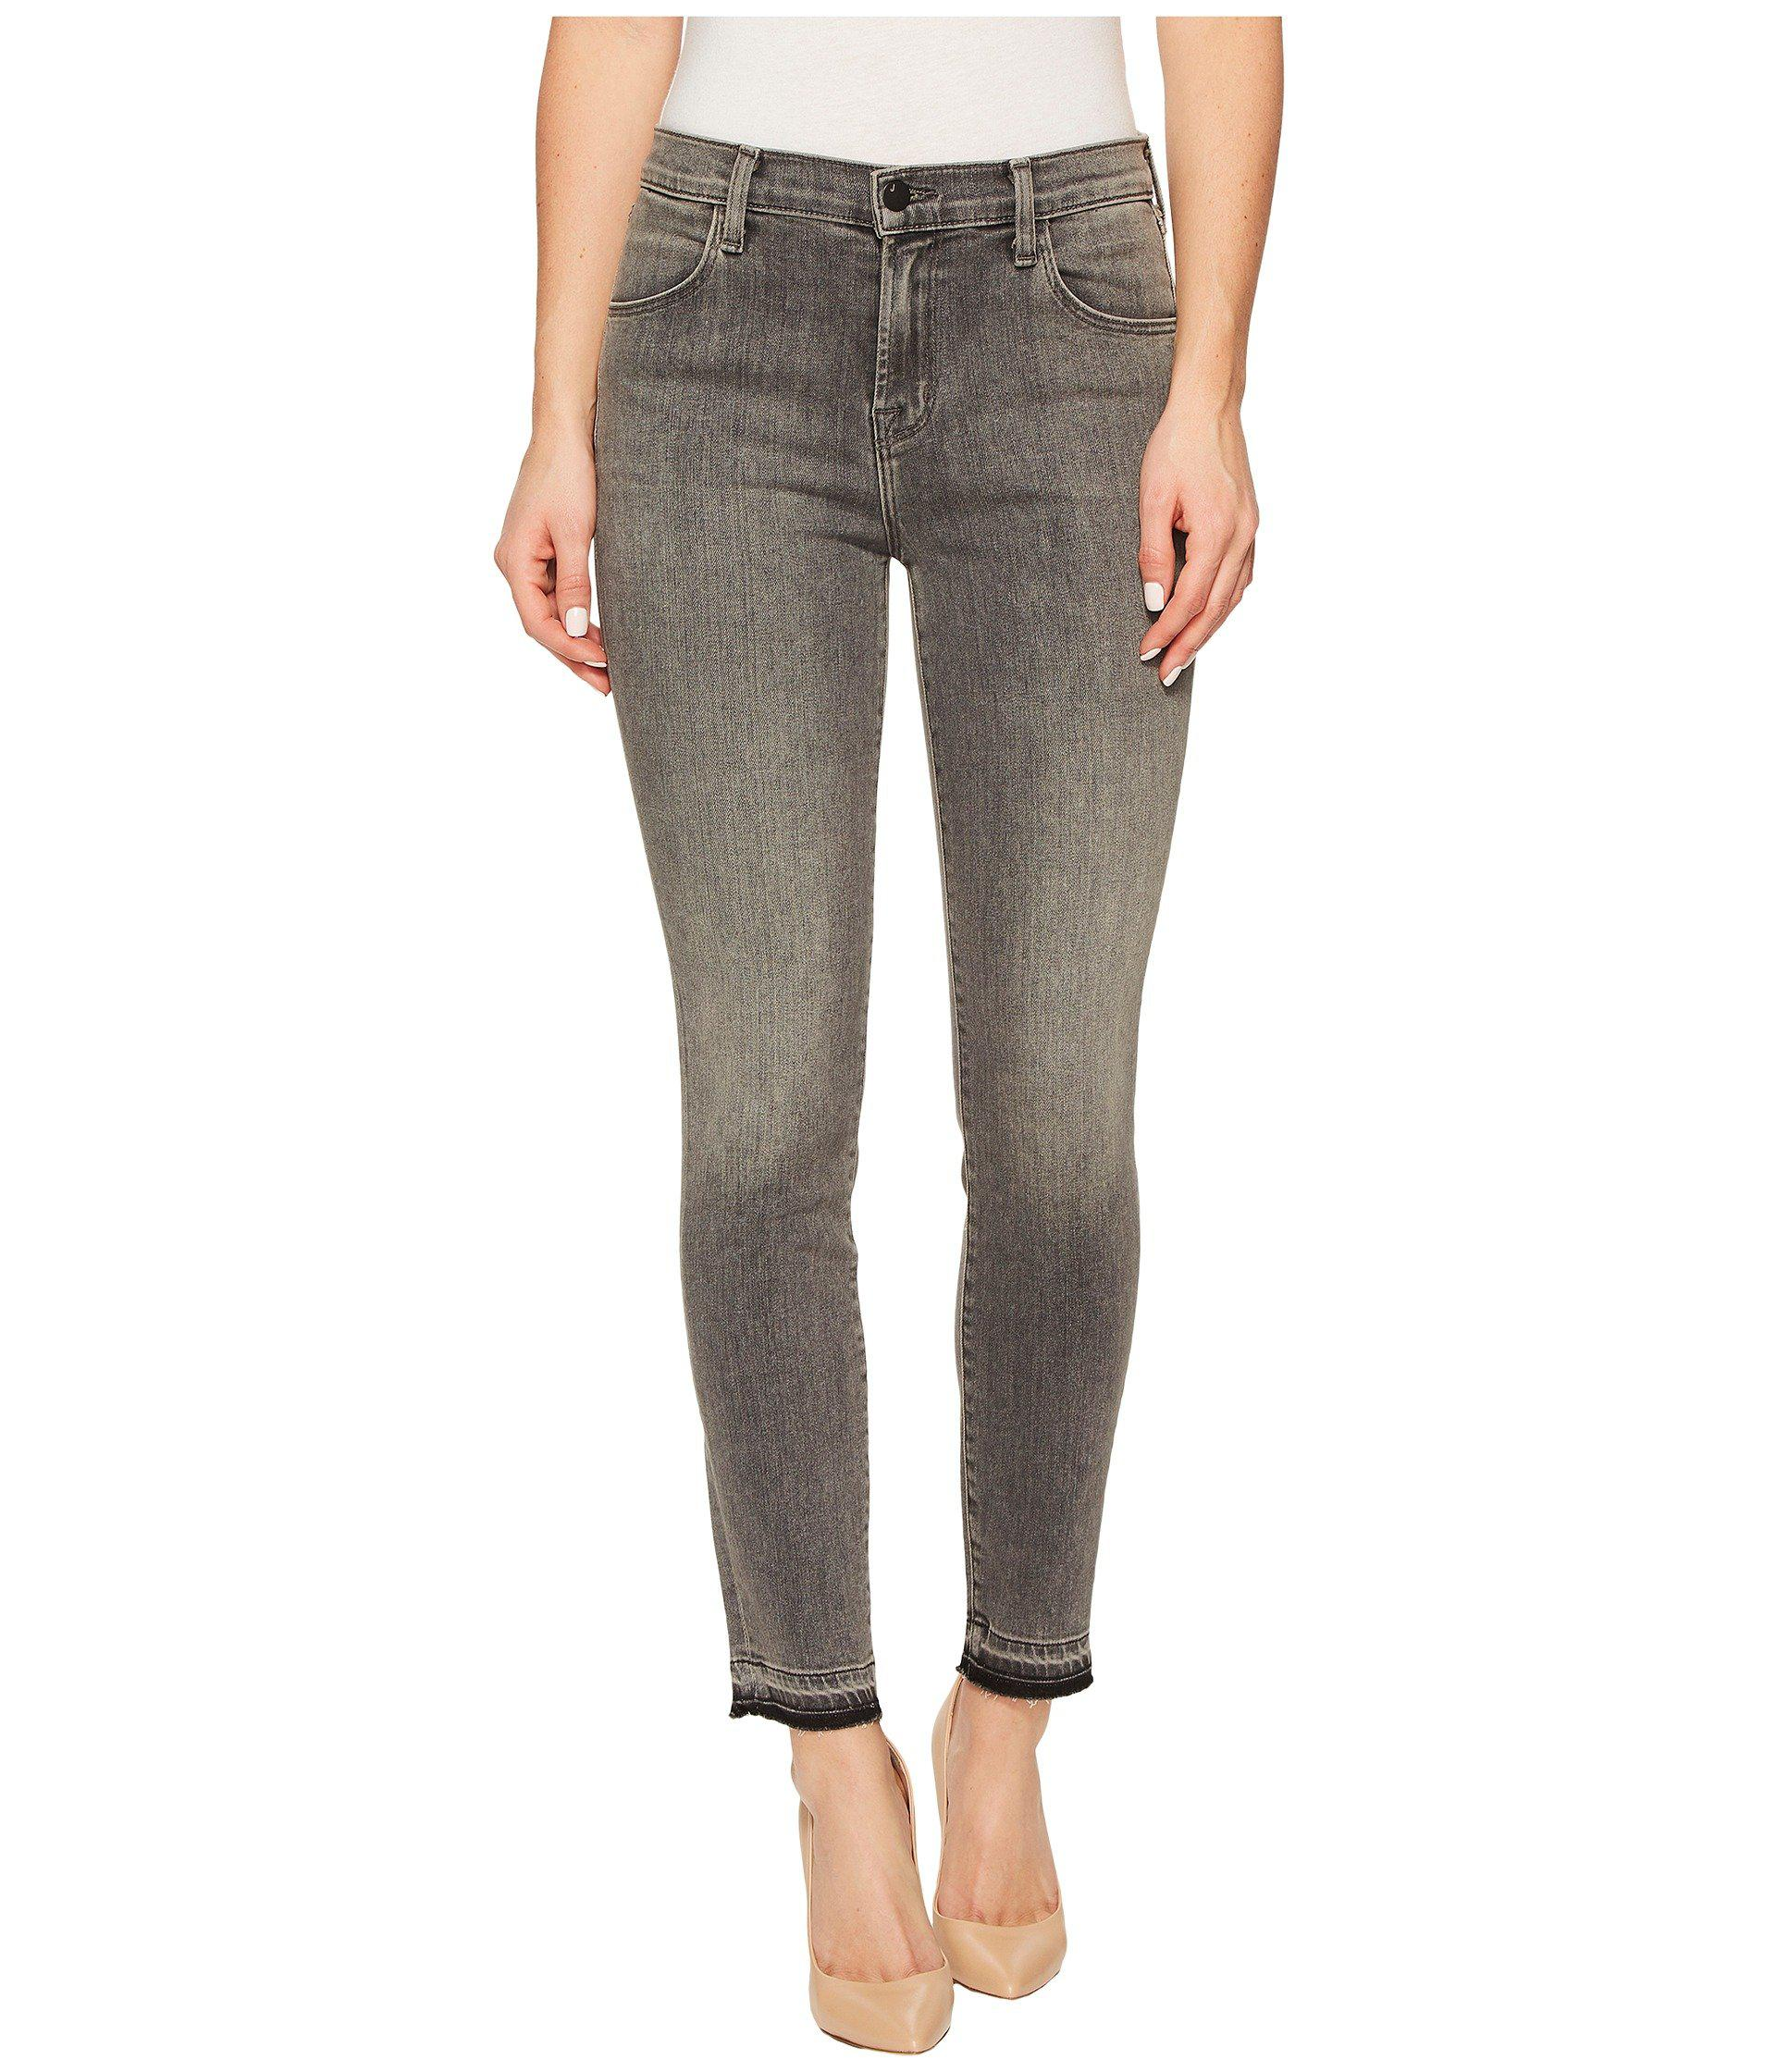 d9fce2c18eb3 Gallery. Previously sold at: 6PM, Zappos · Women's J Brand Alana